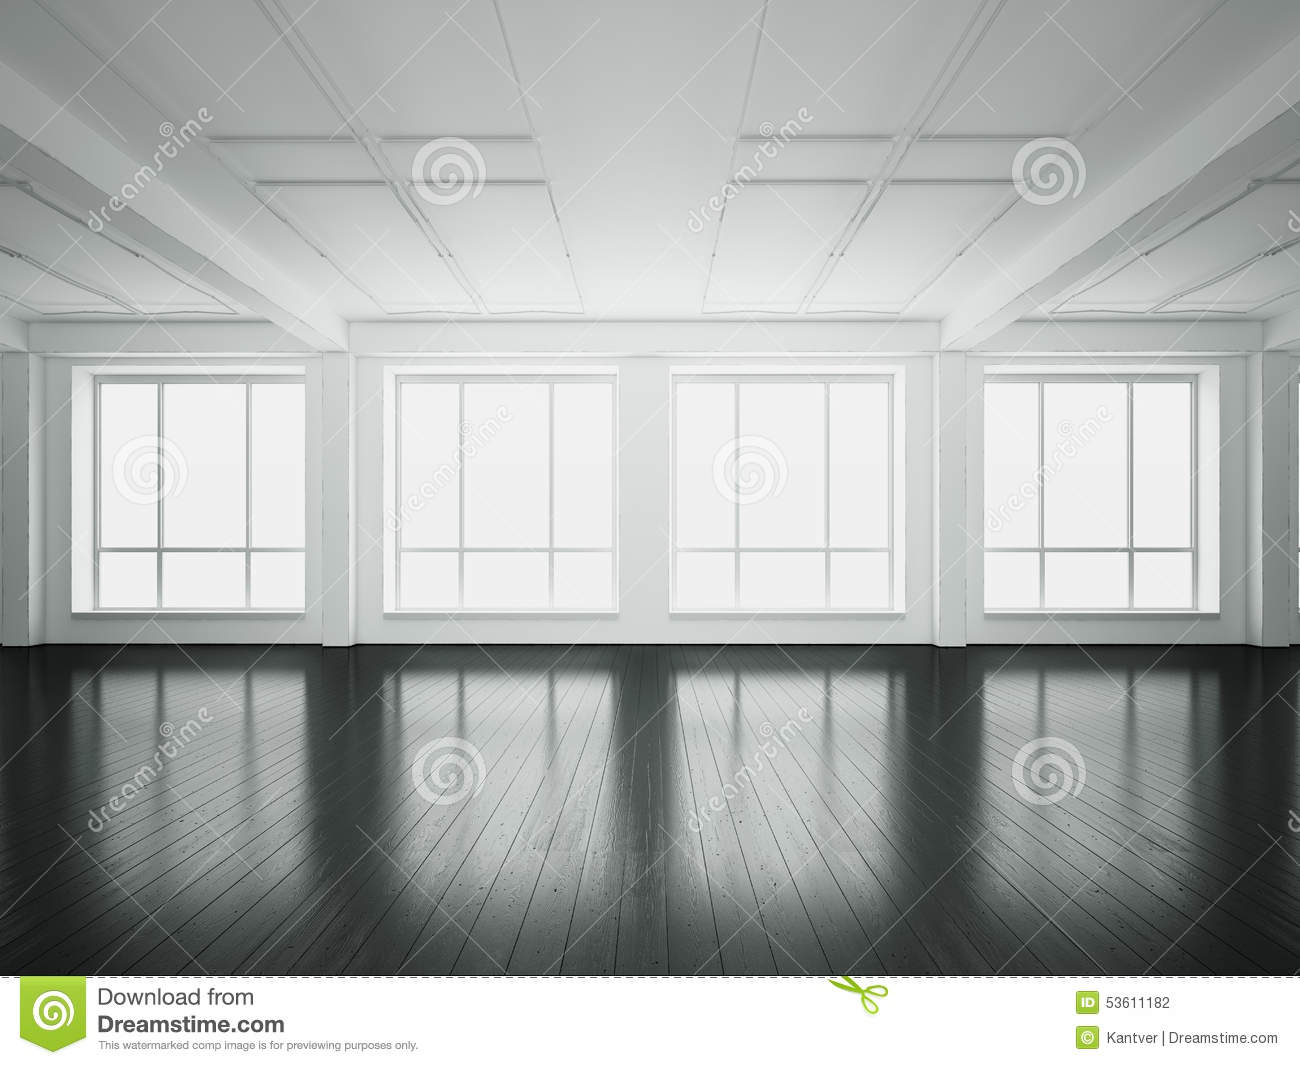 Interior office windows - Big Windows In Open Space Interior 3d Rendering Stock Photography